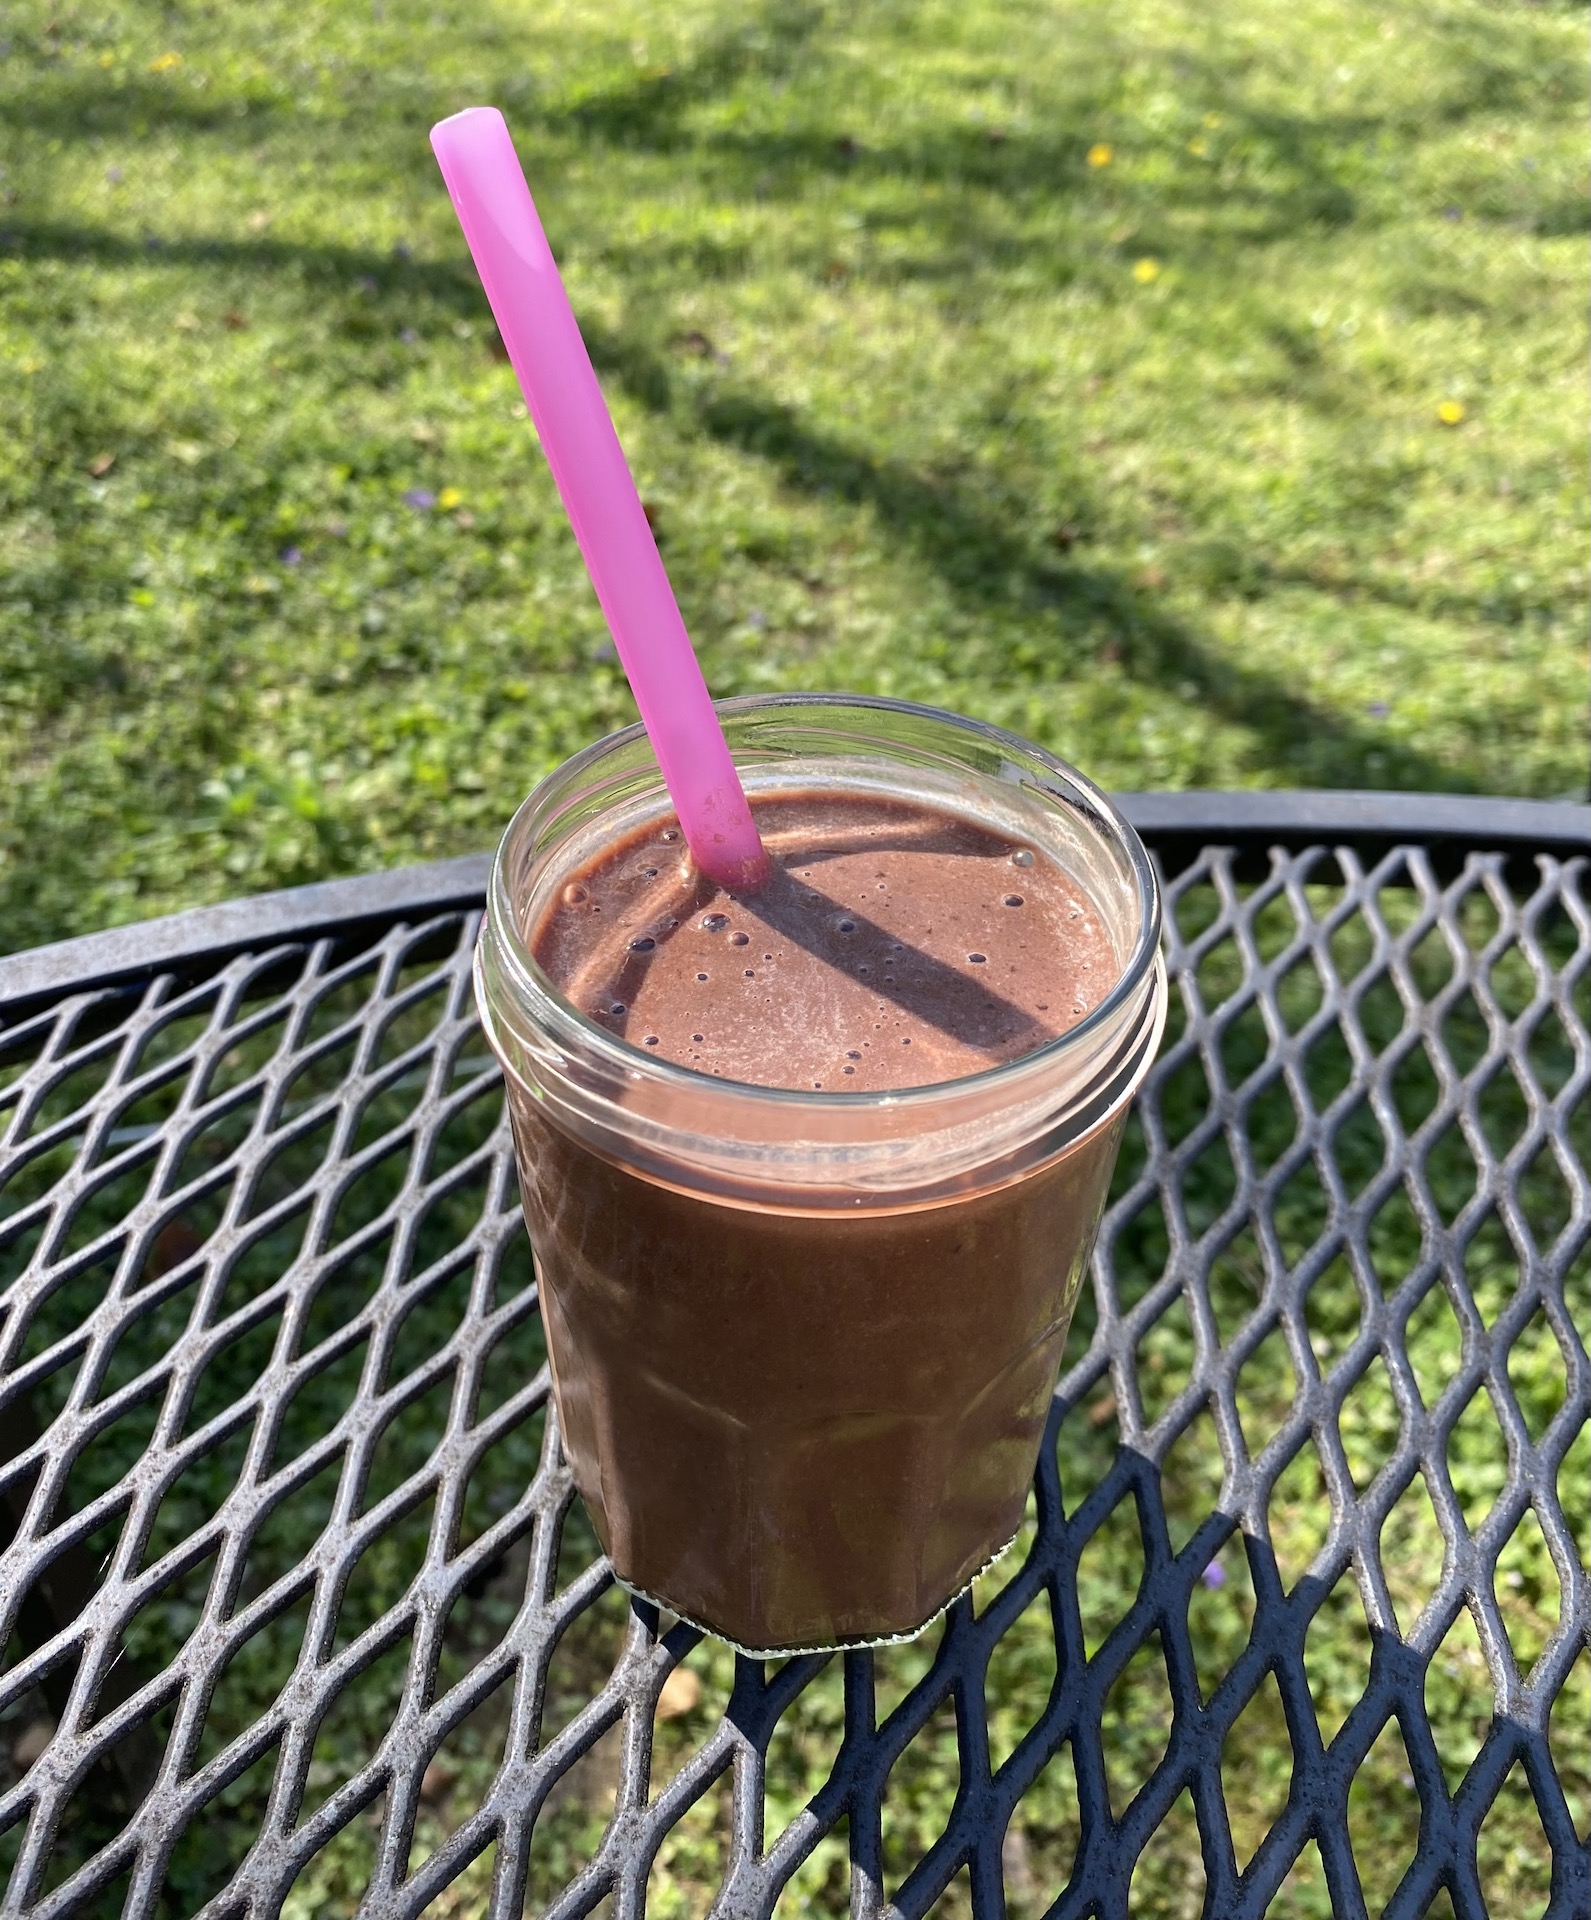 Chocolate banana oat smoothie in a clear glass on an outside table.